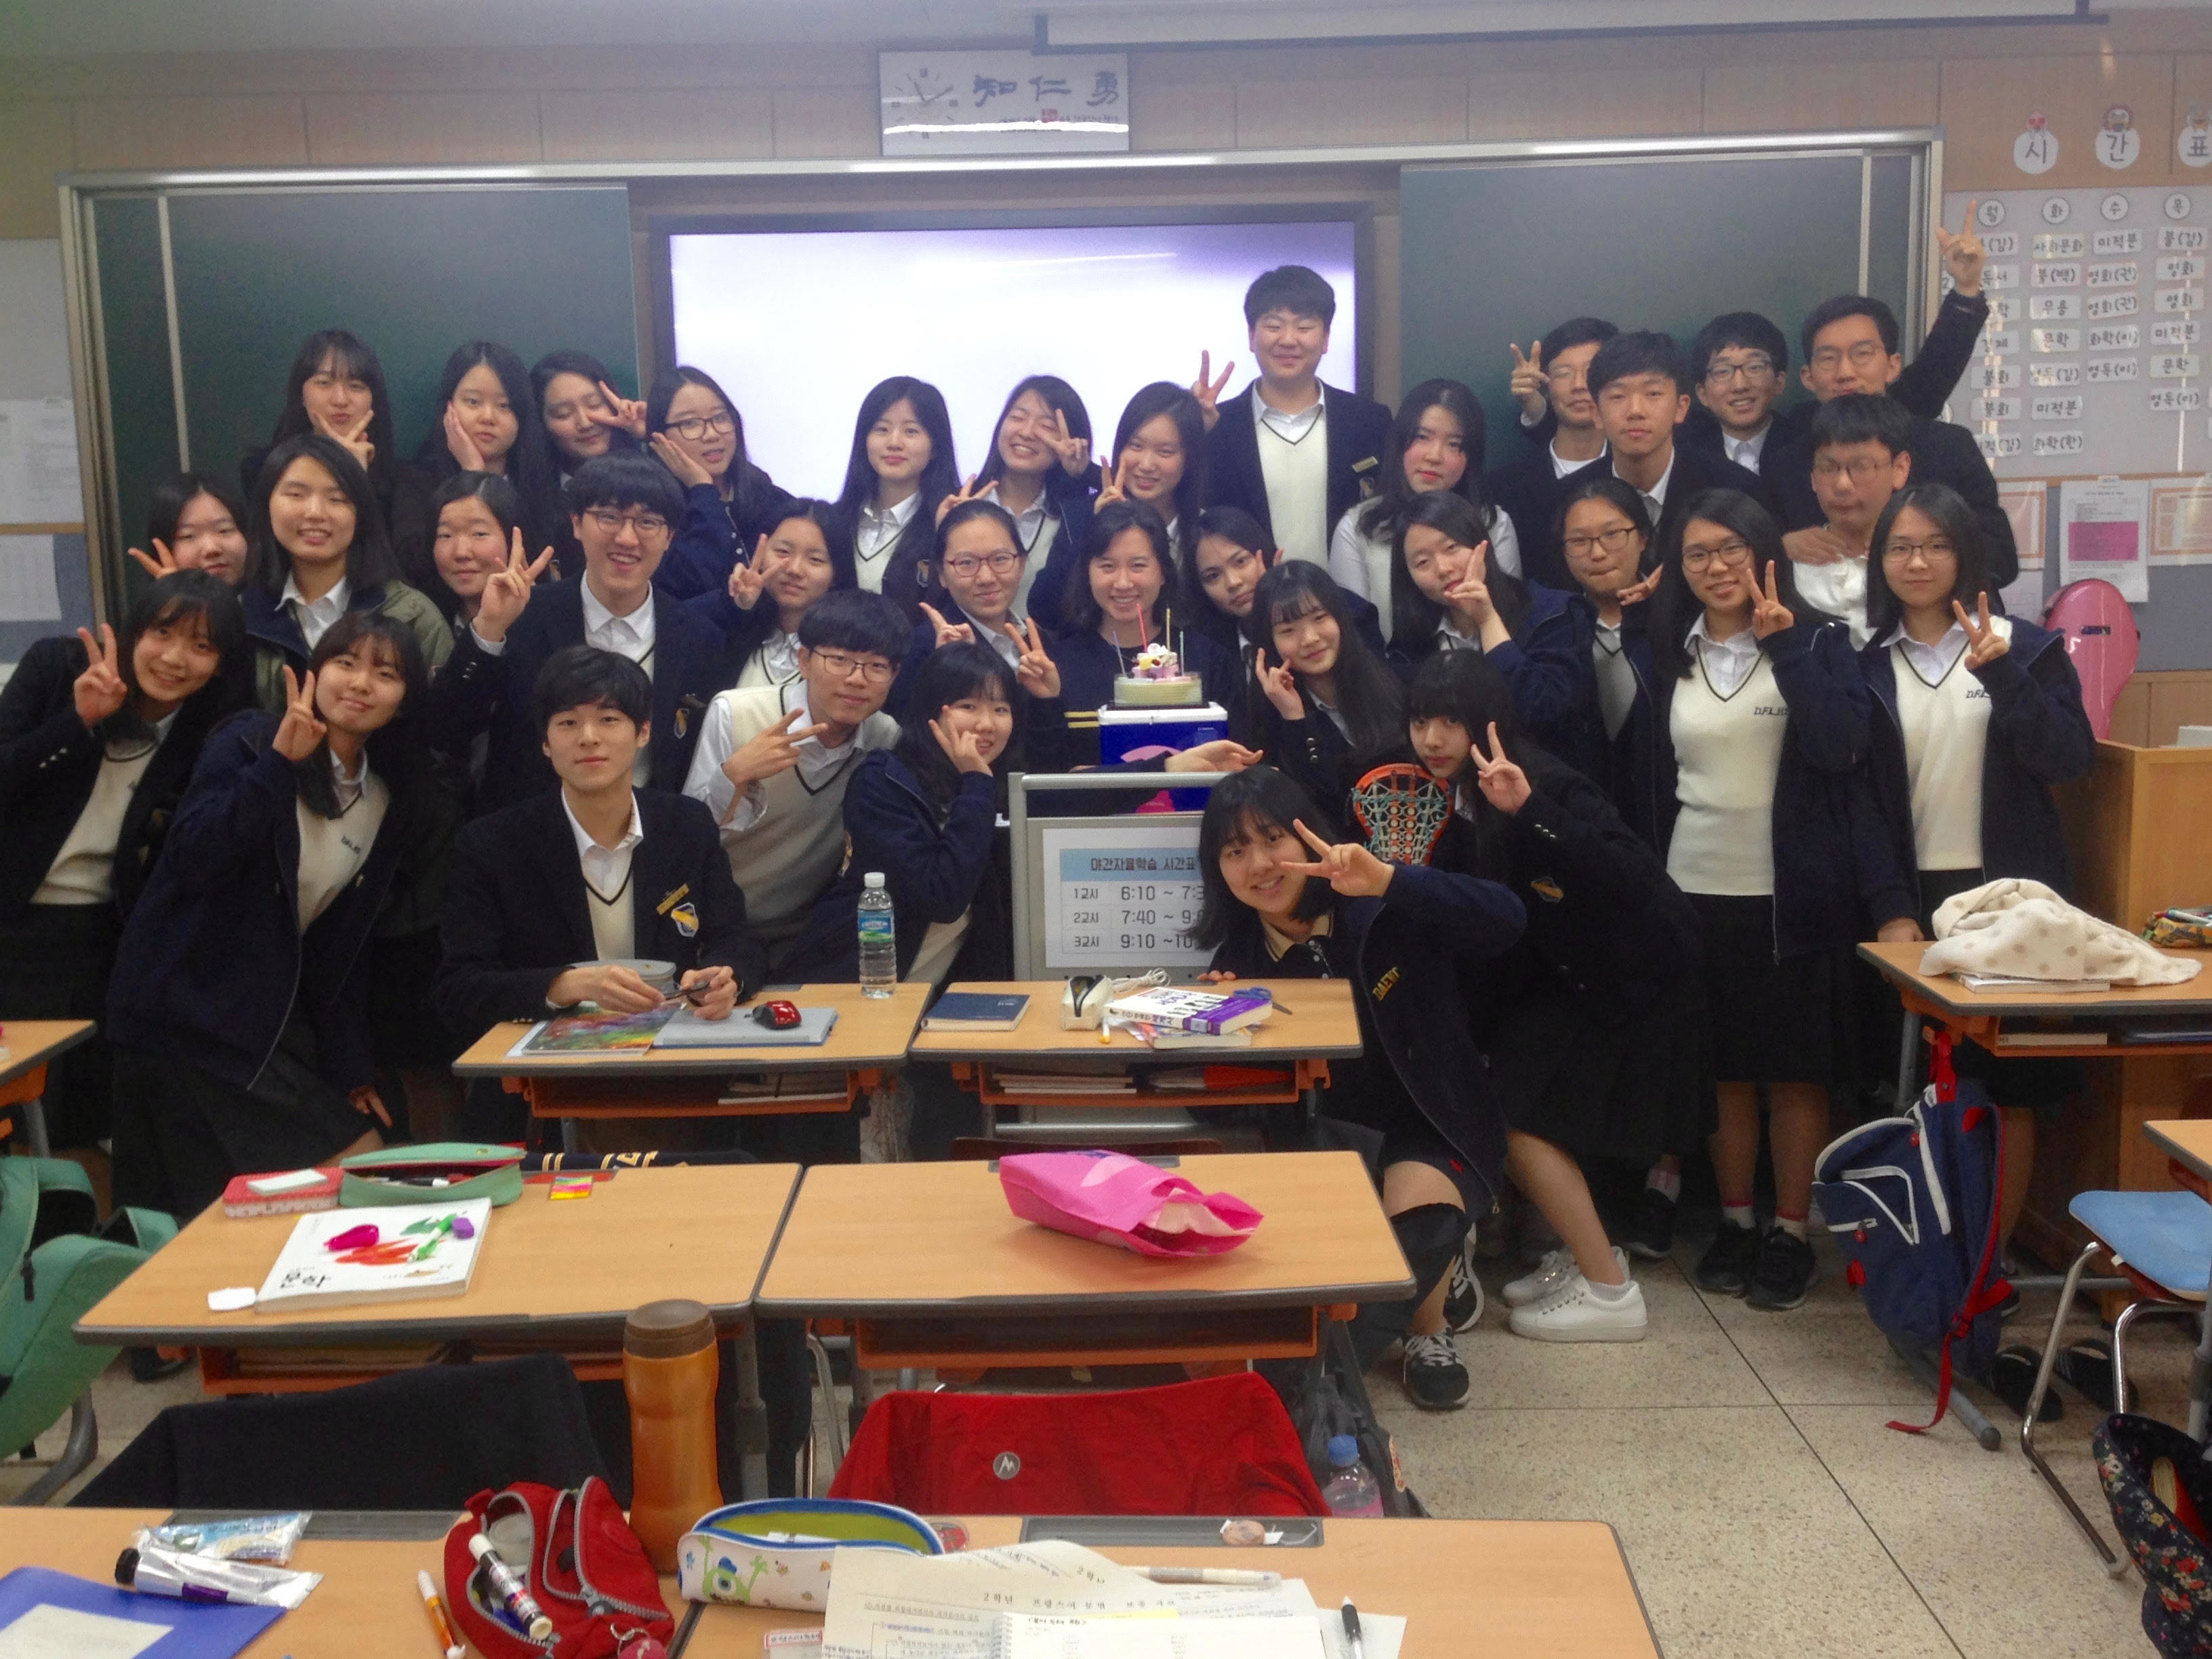 Alexi Birthday Party At Host School In Korea